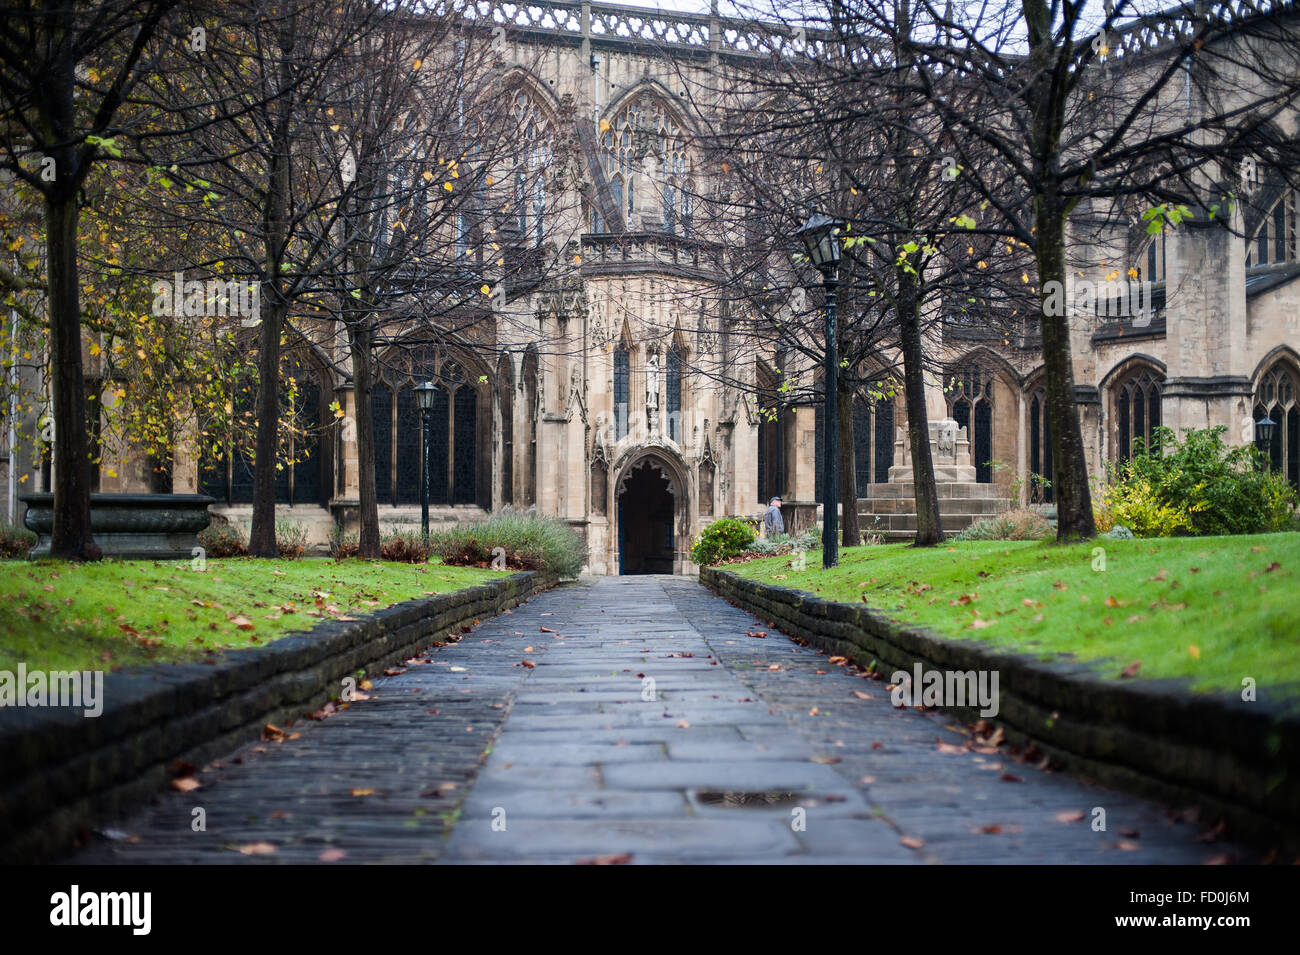 Entrance pathway to Temple Church in Bristol, England - Stock Image